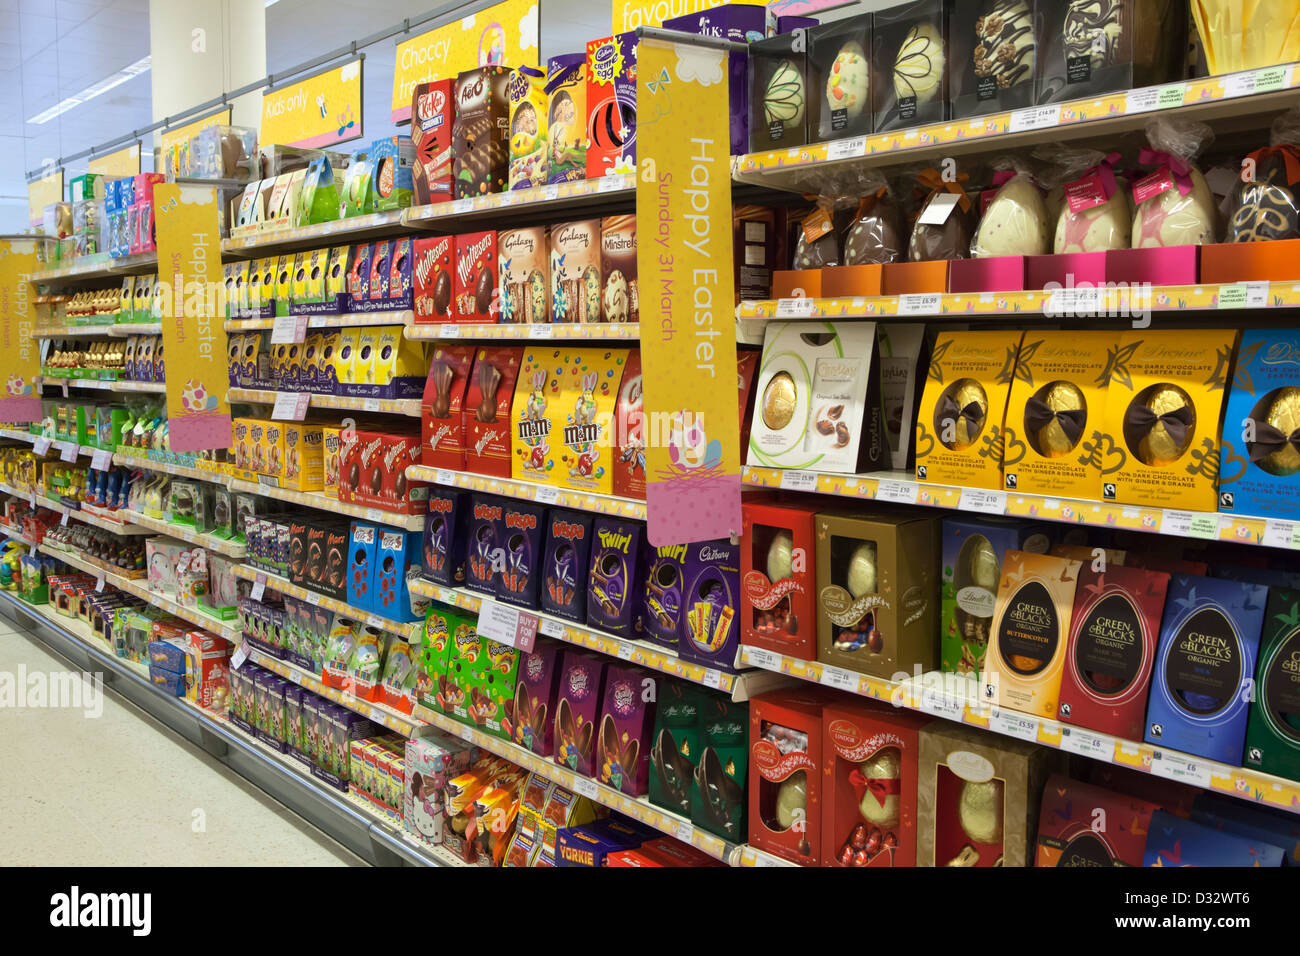 Easter eggs supermarket stock photos easter eggs supermarket stock easter eggs on shelves of waitrose supermarket stock image negle